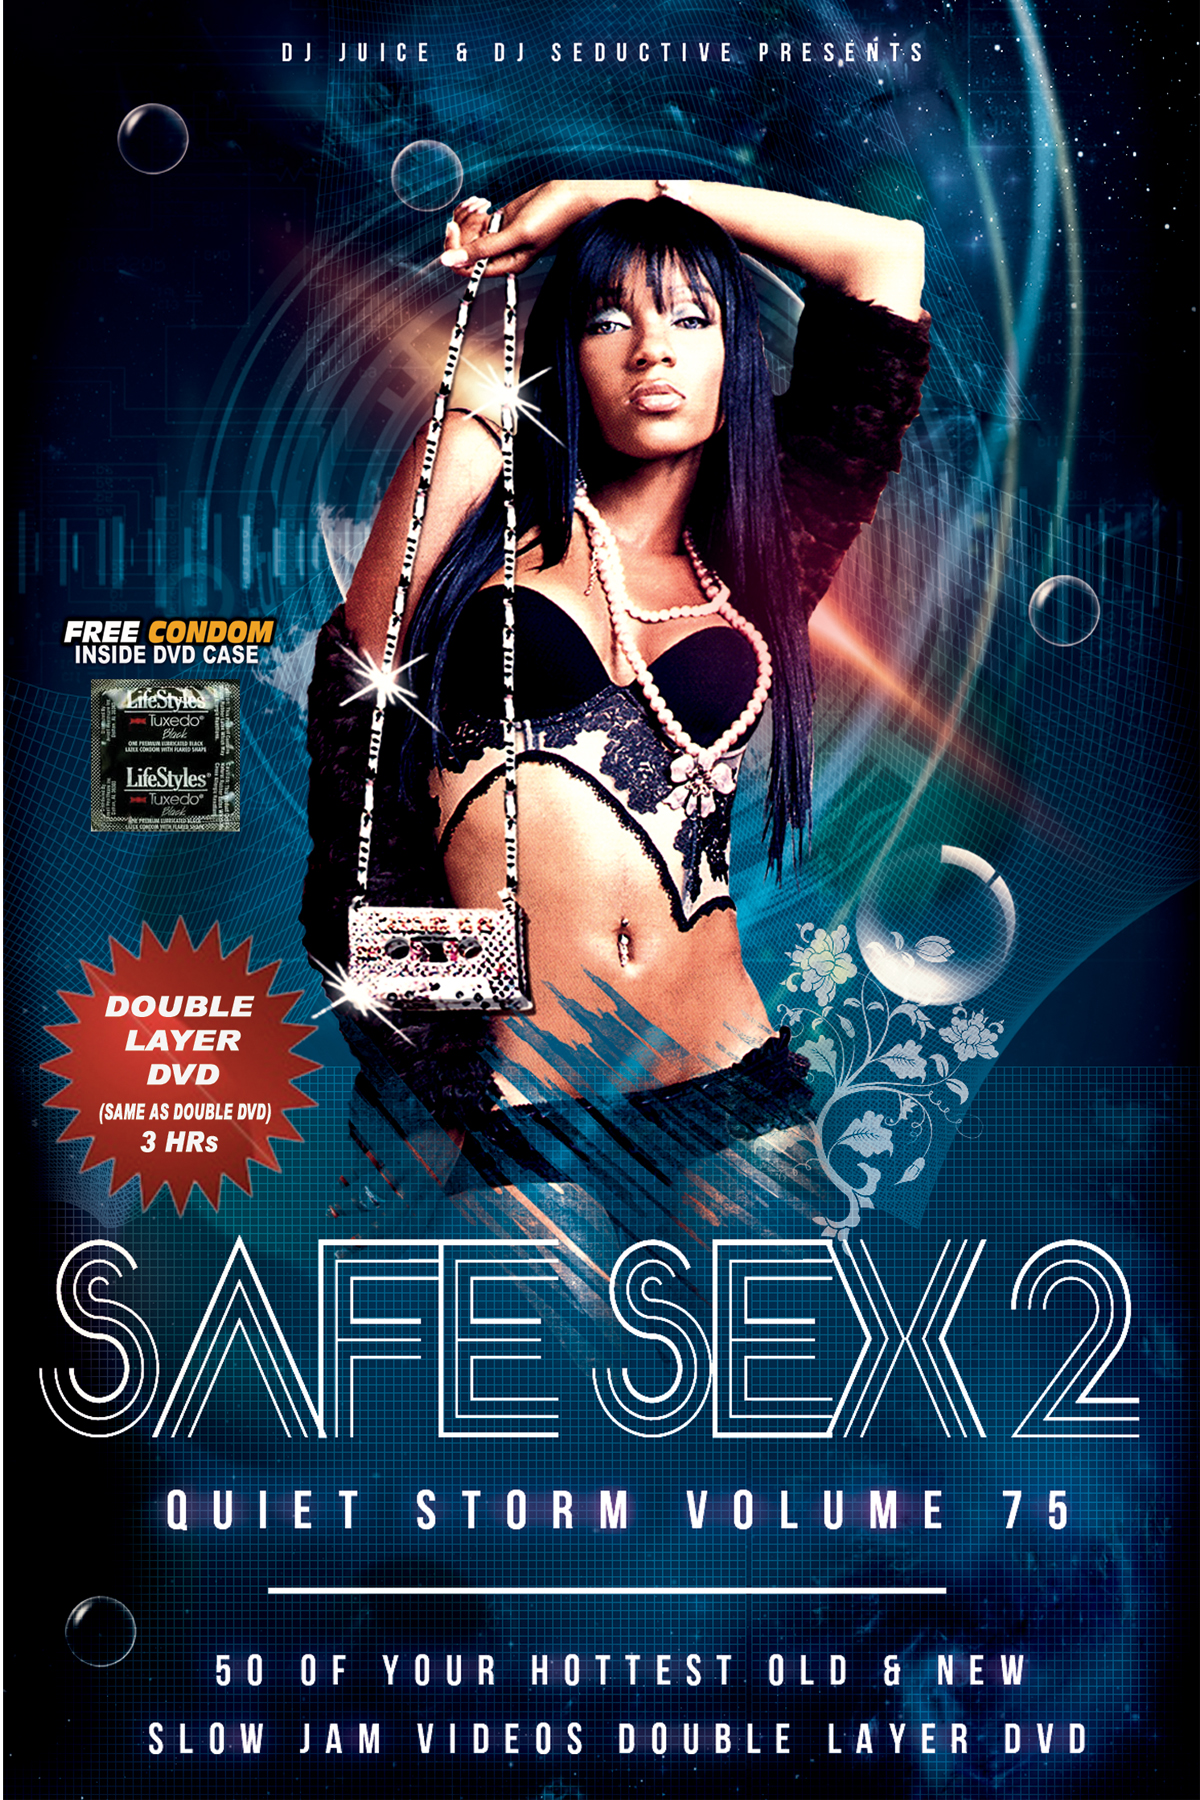 Safe Sex #2: Slow Jam VideoMix Vol  75 (2 DVD/1 CD) - Blendkingz com | The  #1 Rated Mixtapes & Video Blend DVDs Worldwide